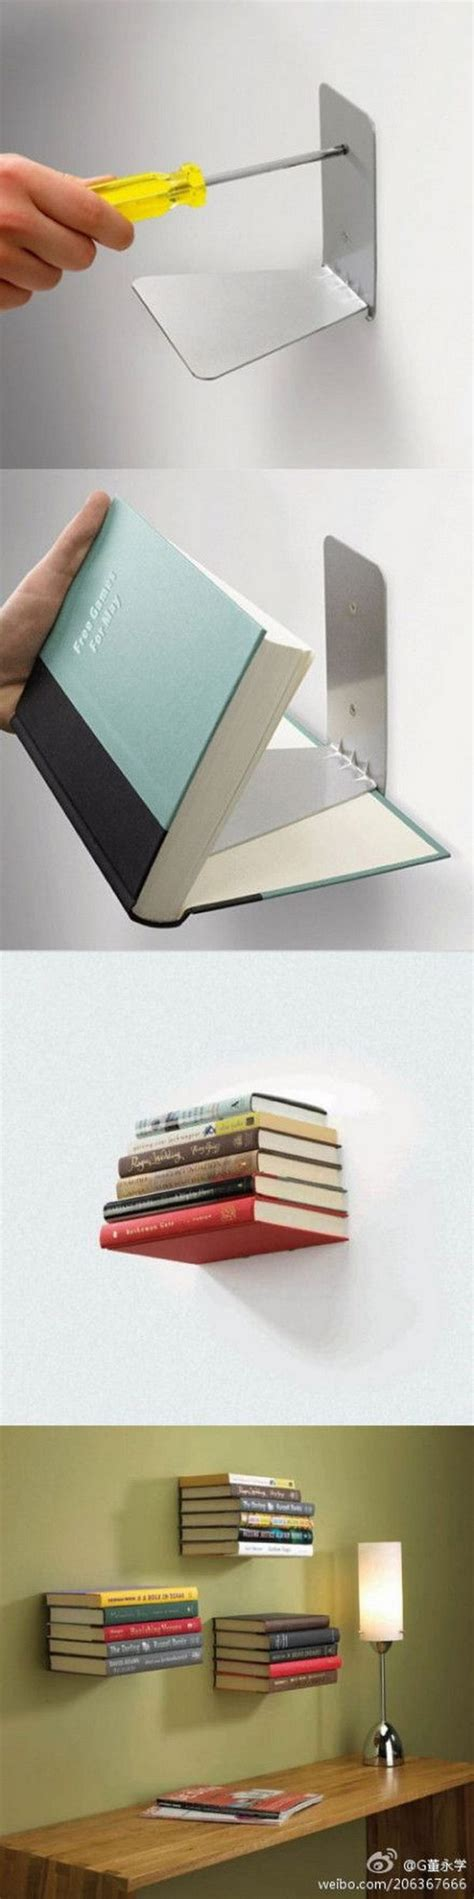 diy home decor books diy projects made with books recycled things